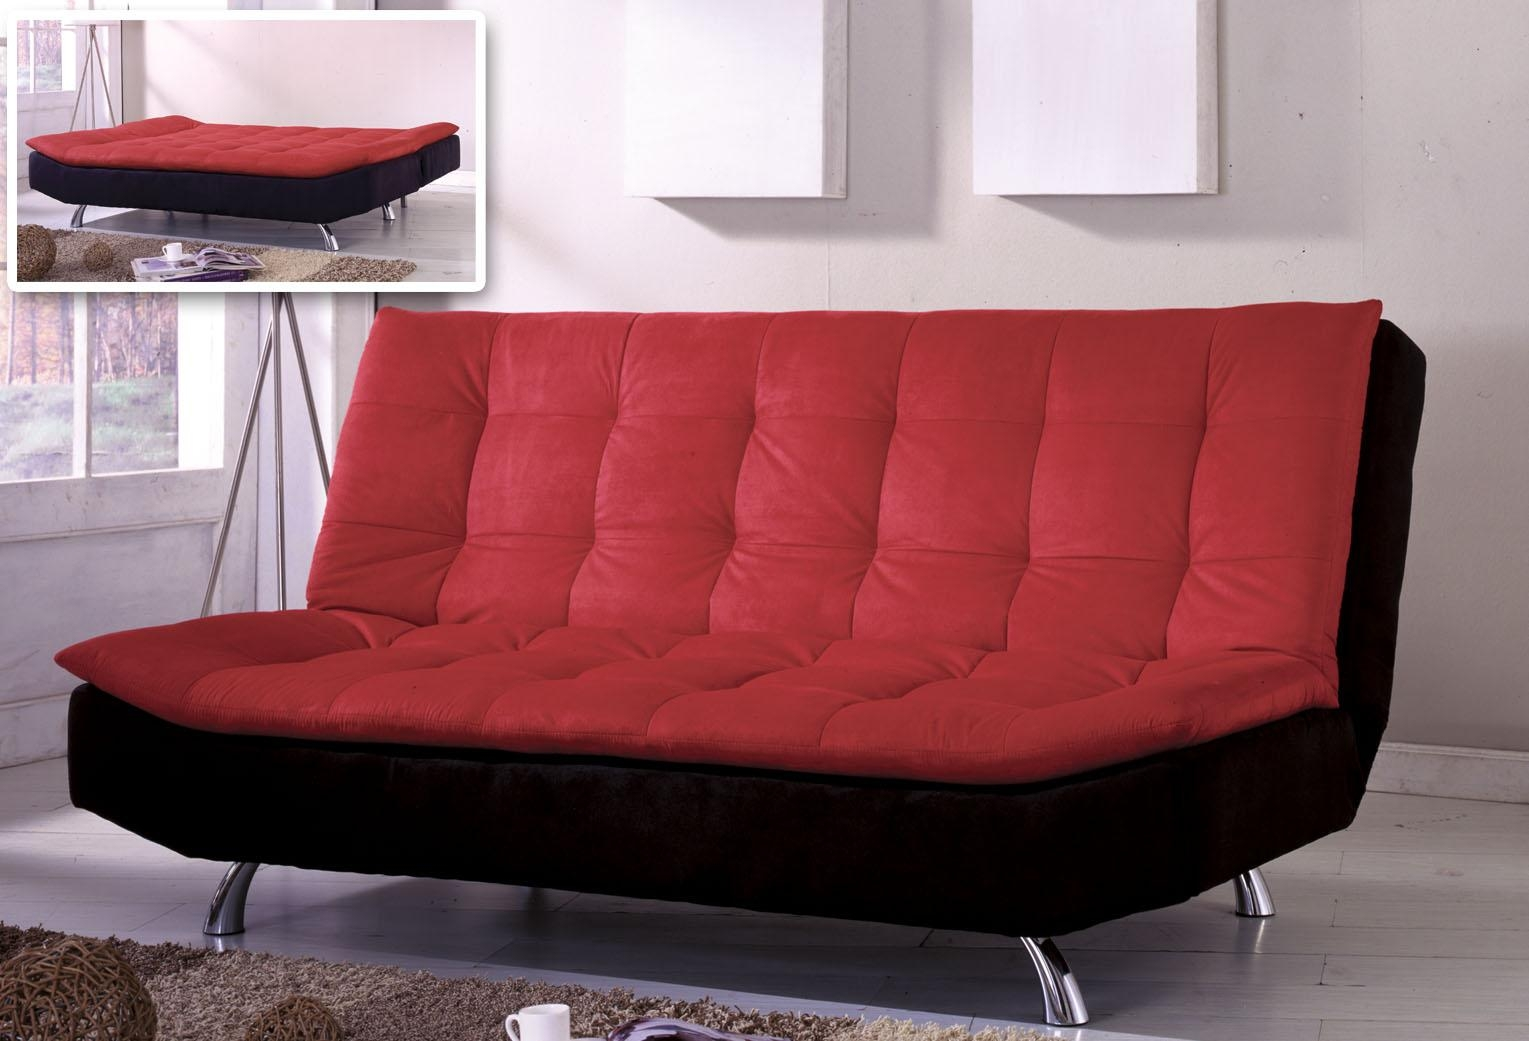 Ideas Futon Couch Bed : Futon Couch Bed Design – Home Decor Pertaining To Futon Couch Beds (View 10 of 20)